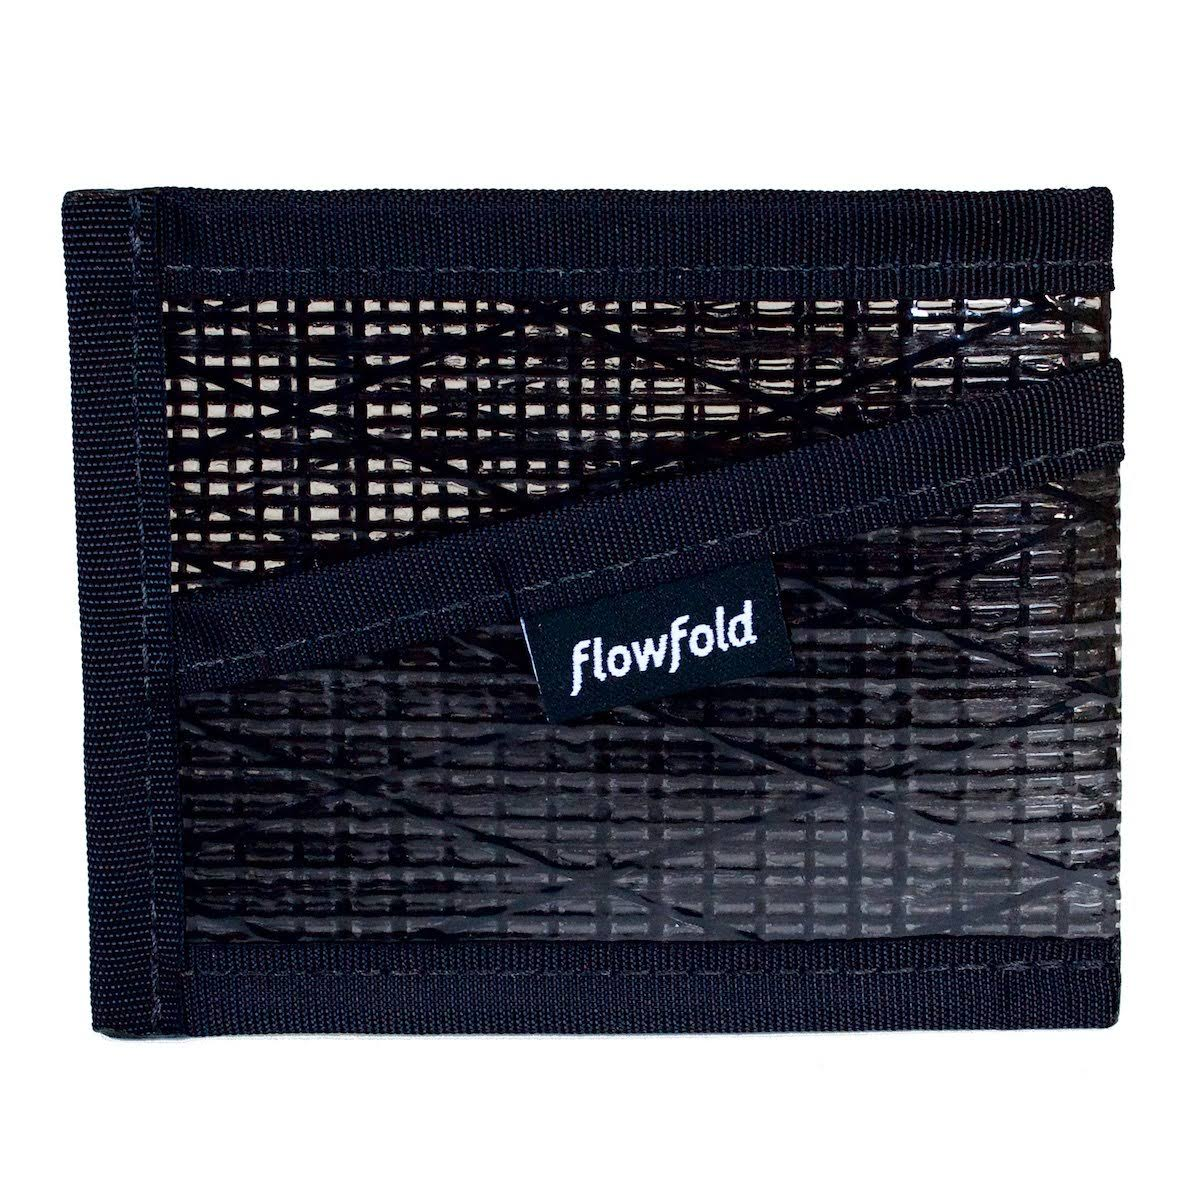 Flowfold - Three Pocket Wallet - Black Pearl